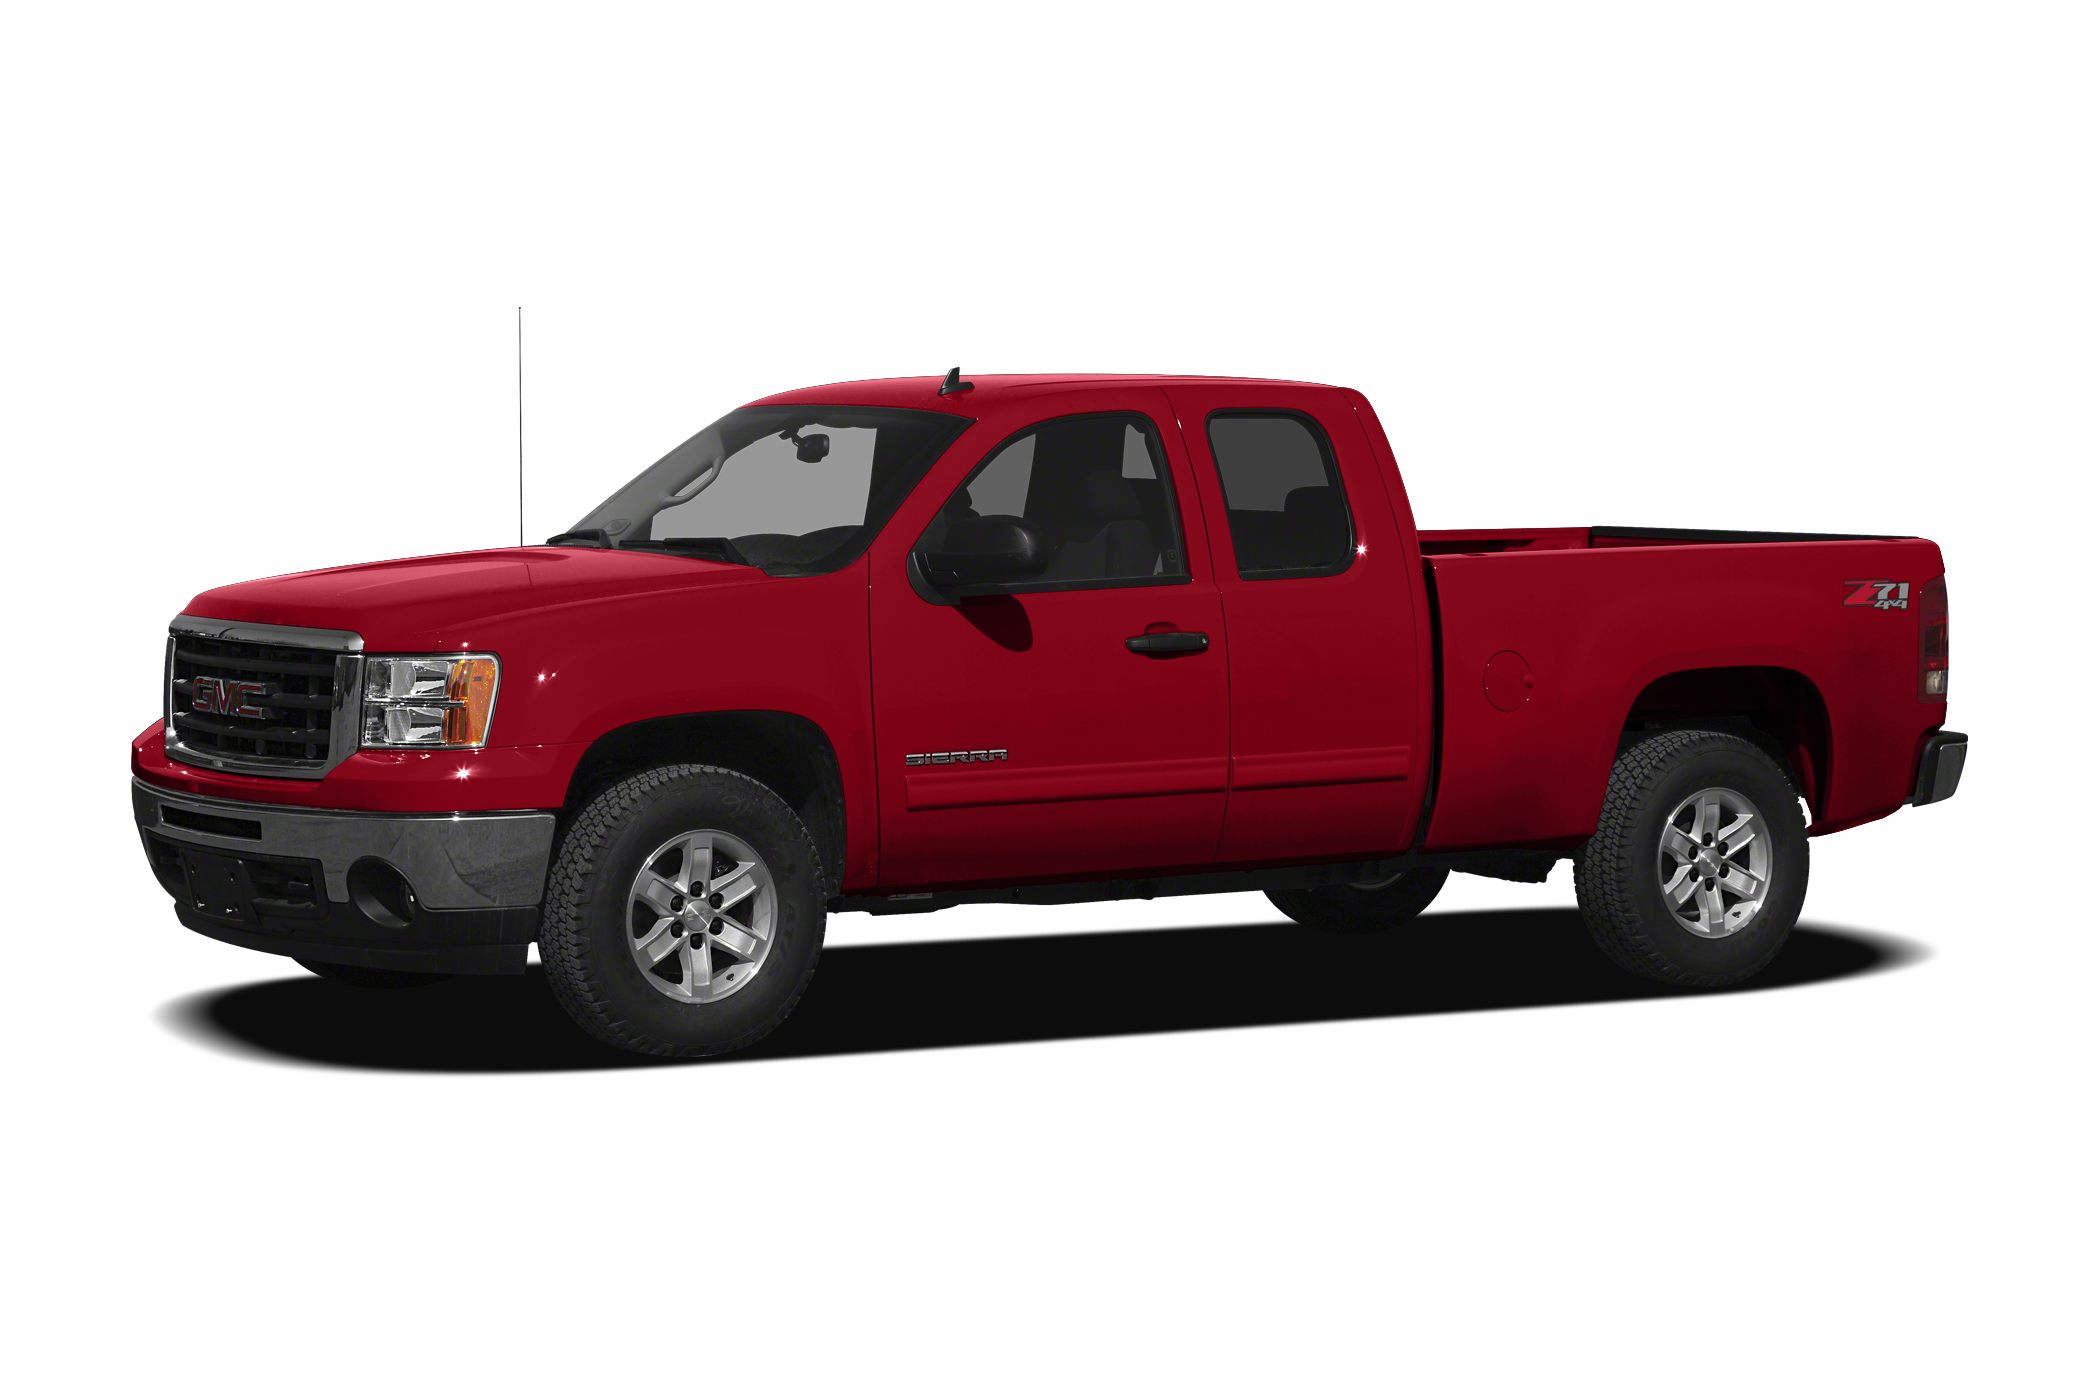 2011 GMC Sierra 1500 SL Crew Cab Pickup for sale in Clarksville for $21,981 with 87,499 miles.